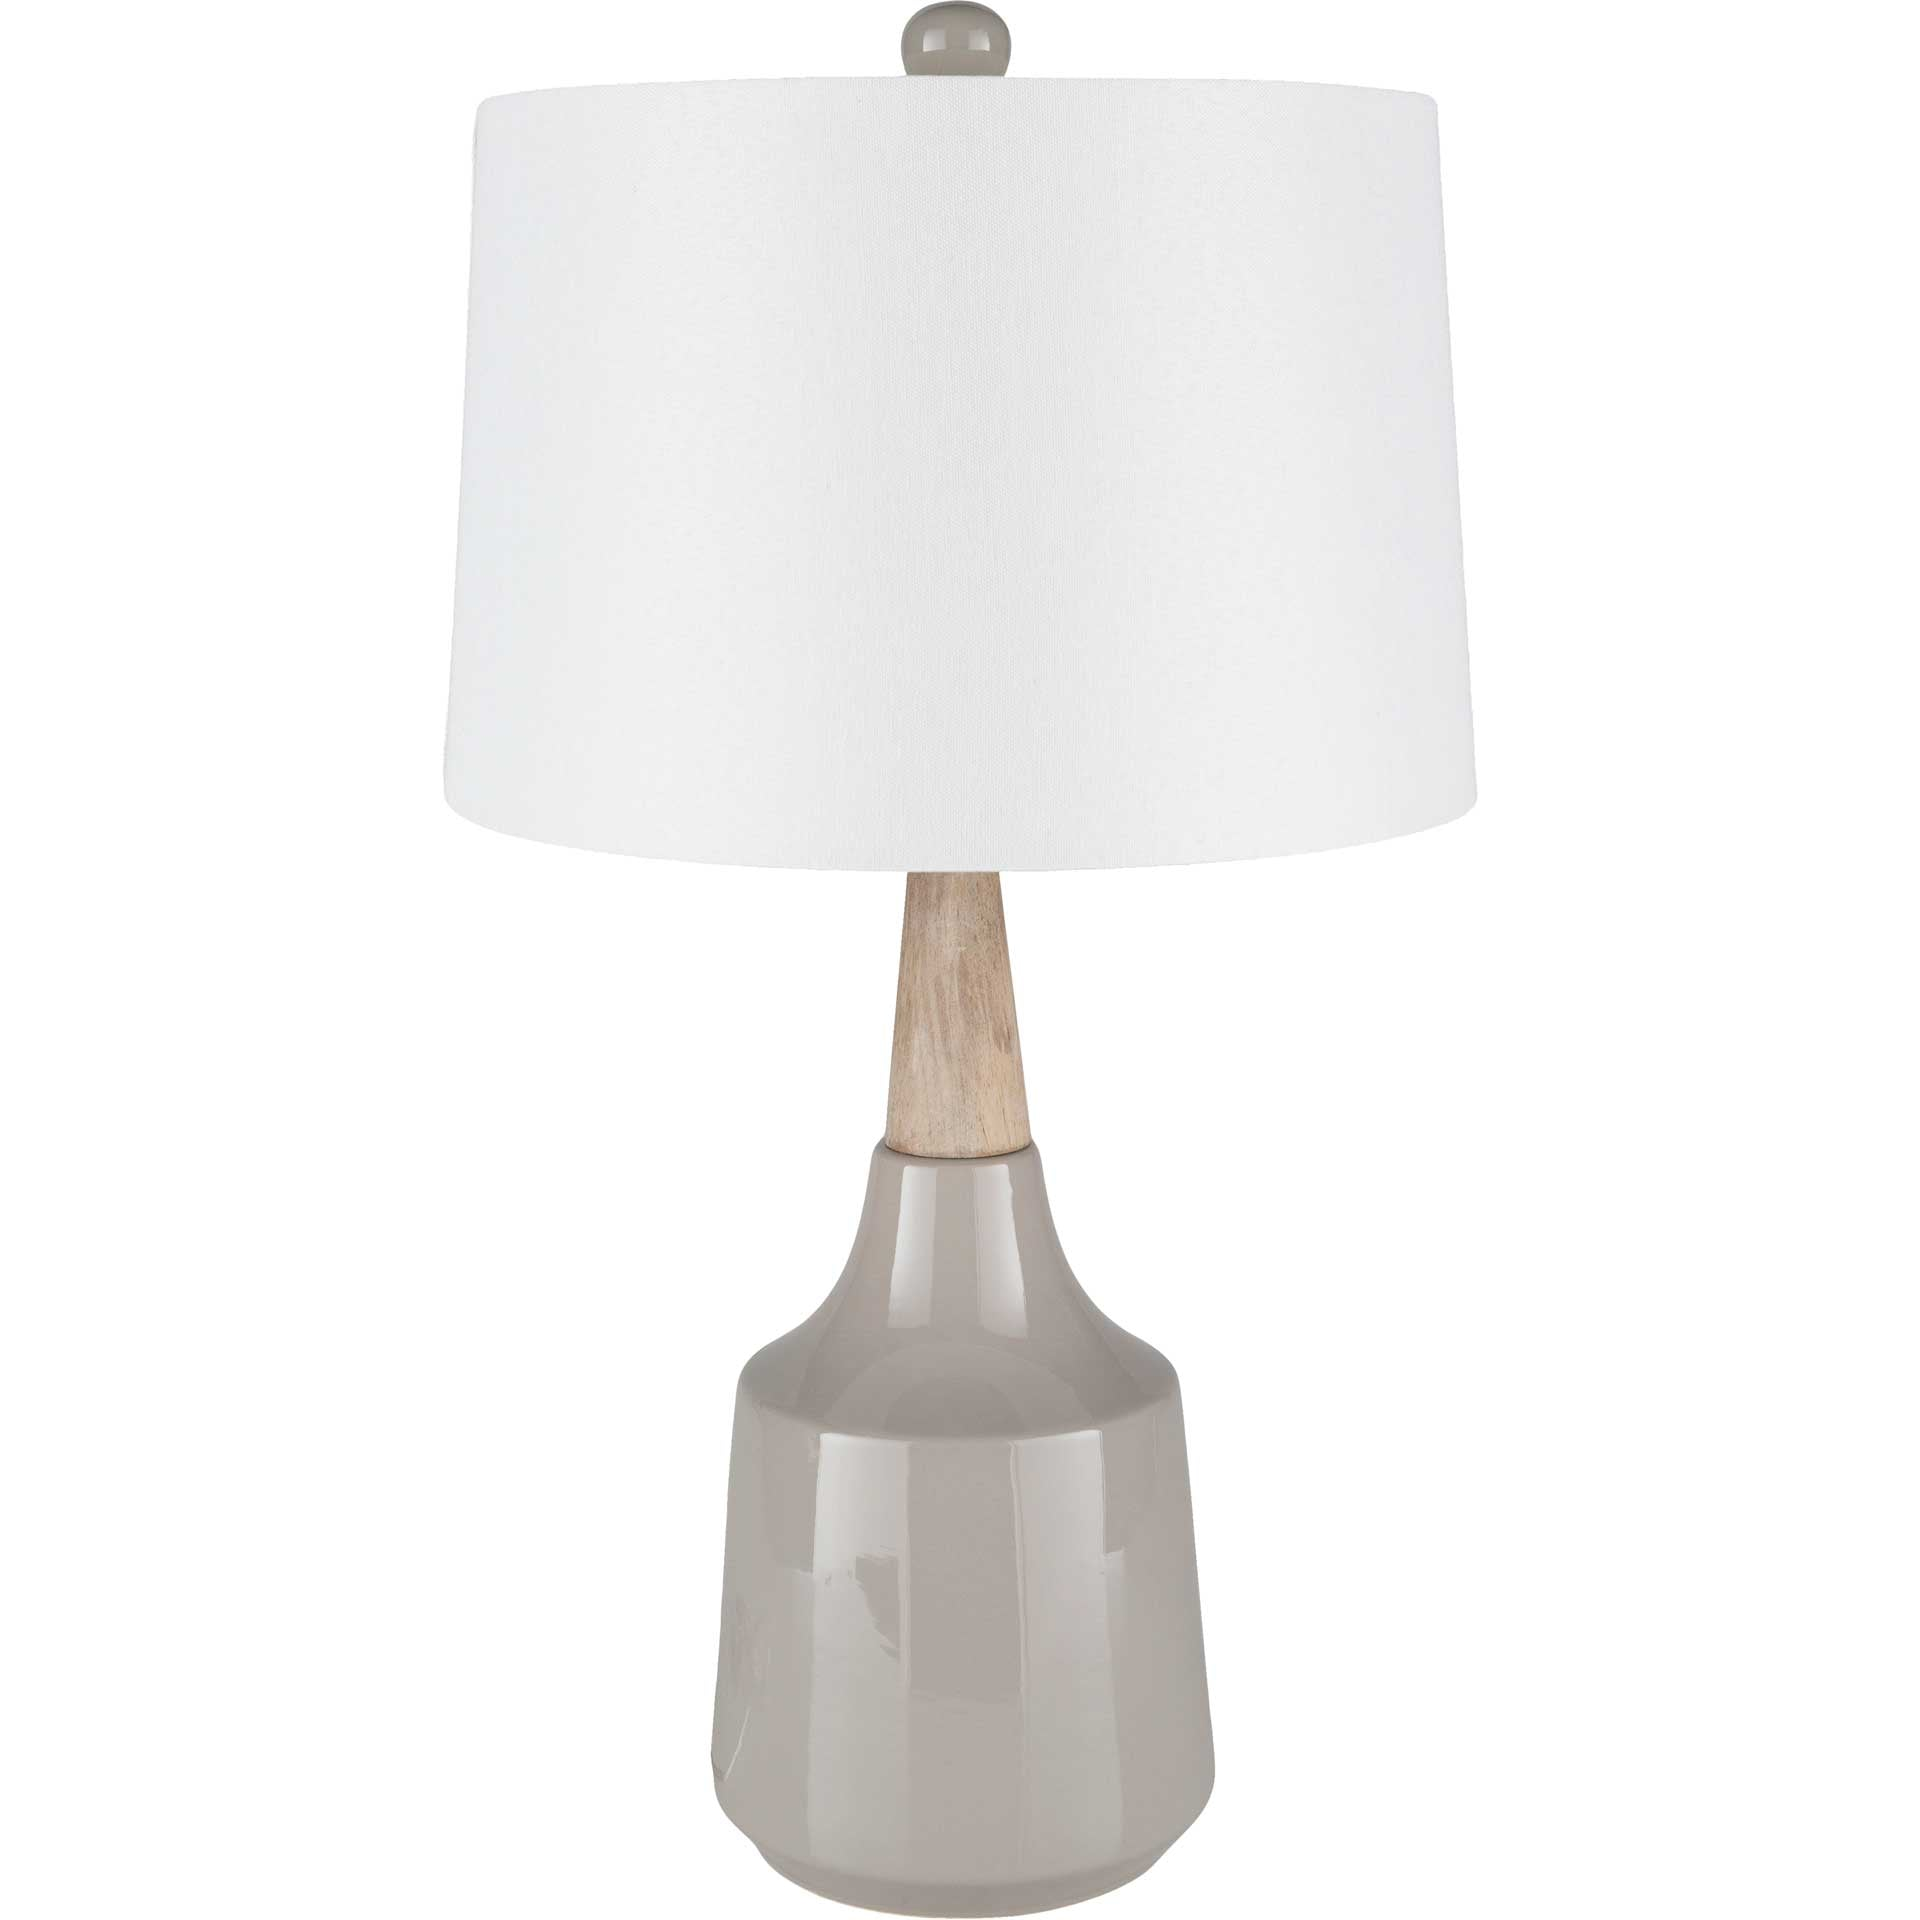 Keaton Table Lamp White/Medium Gray